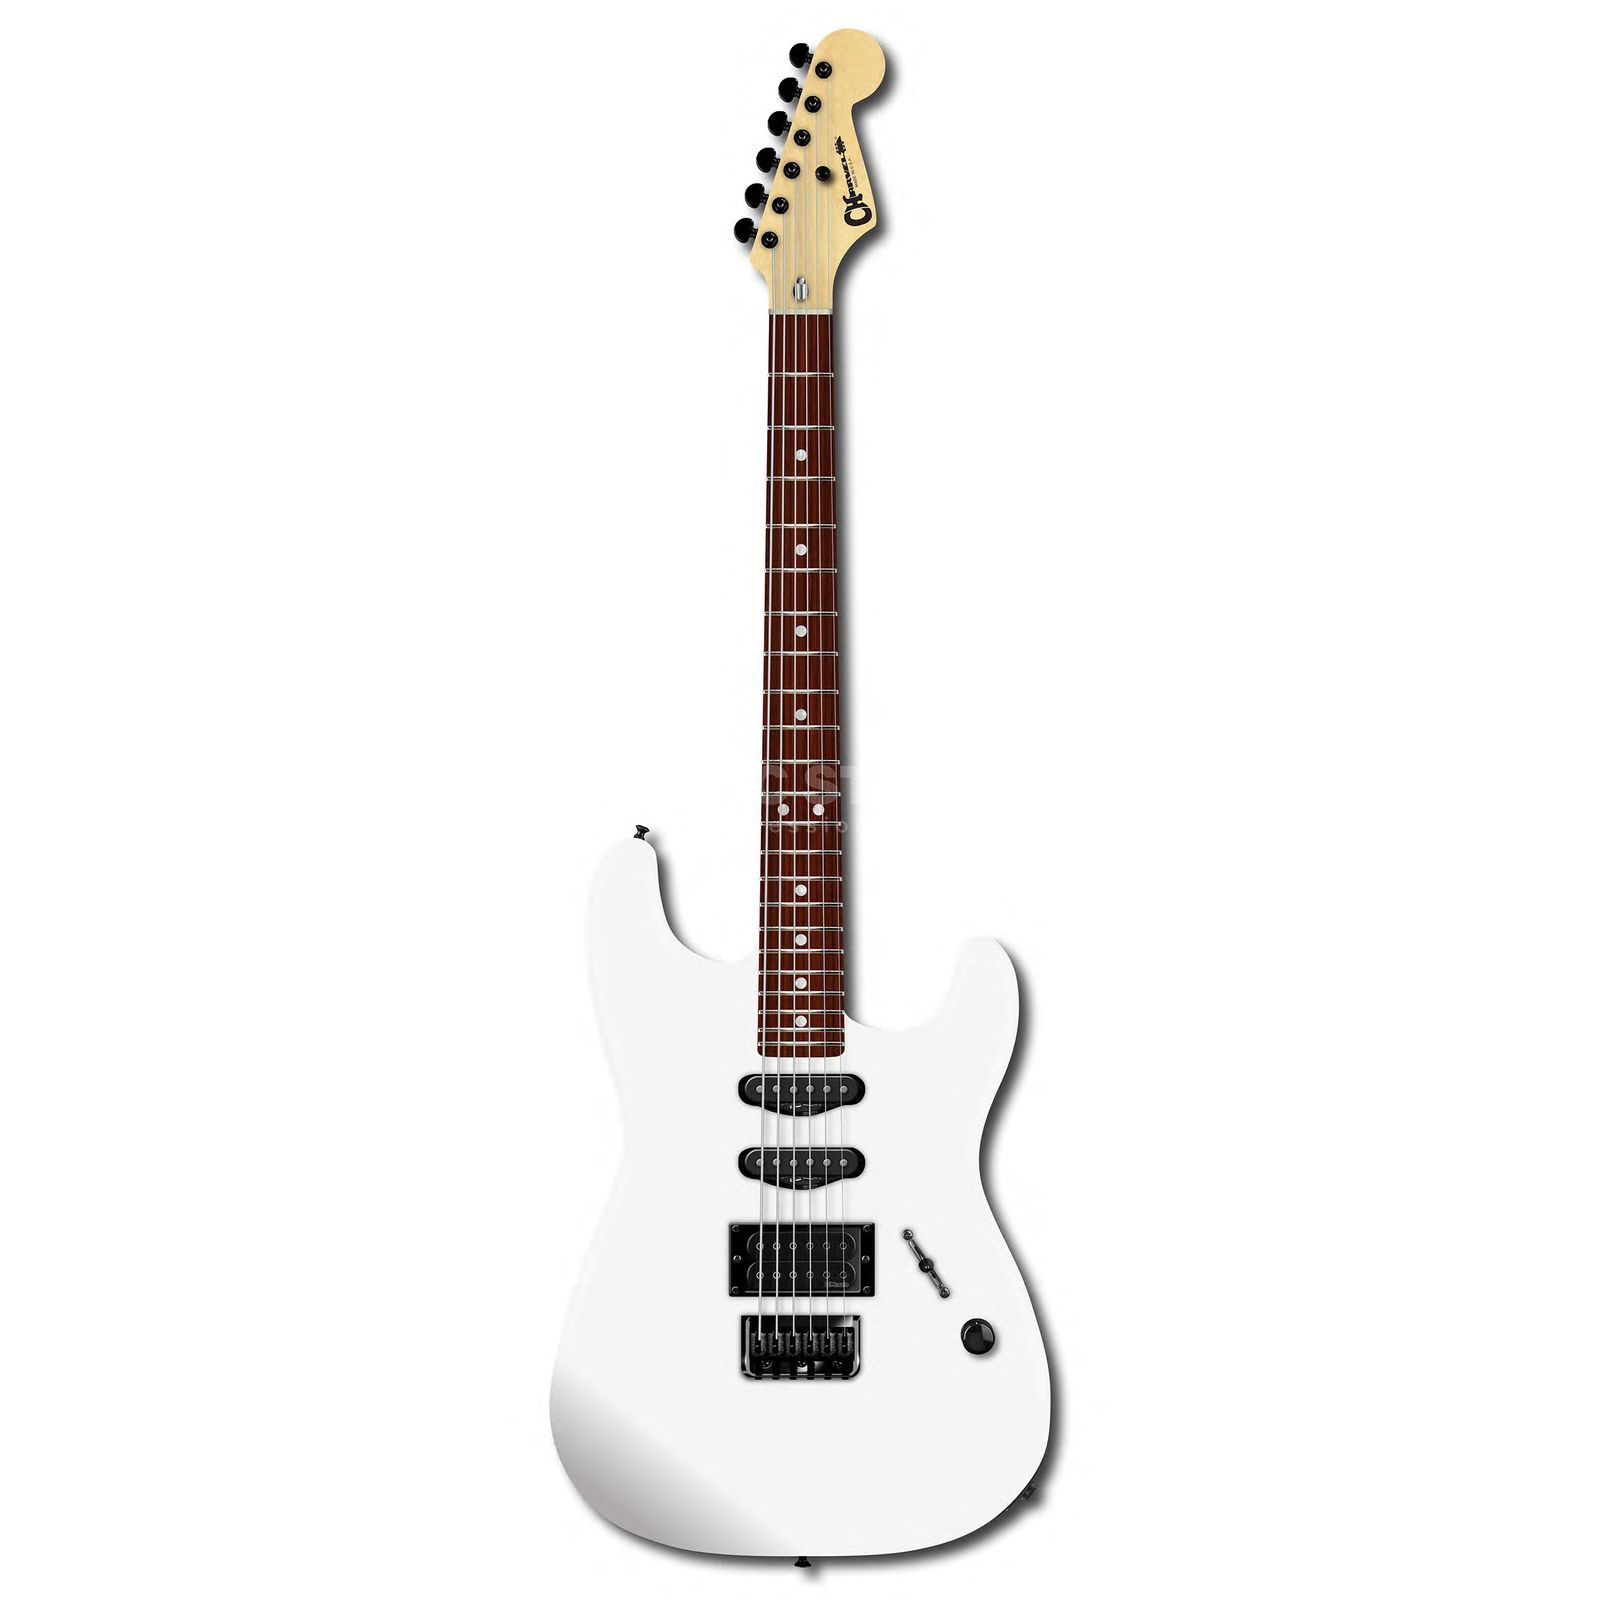 Charvel USA Select San Dimas Style 1 HSS HT Snow Blind Satin Изображение товара